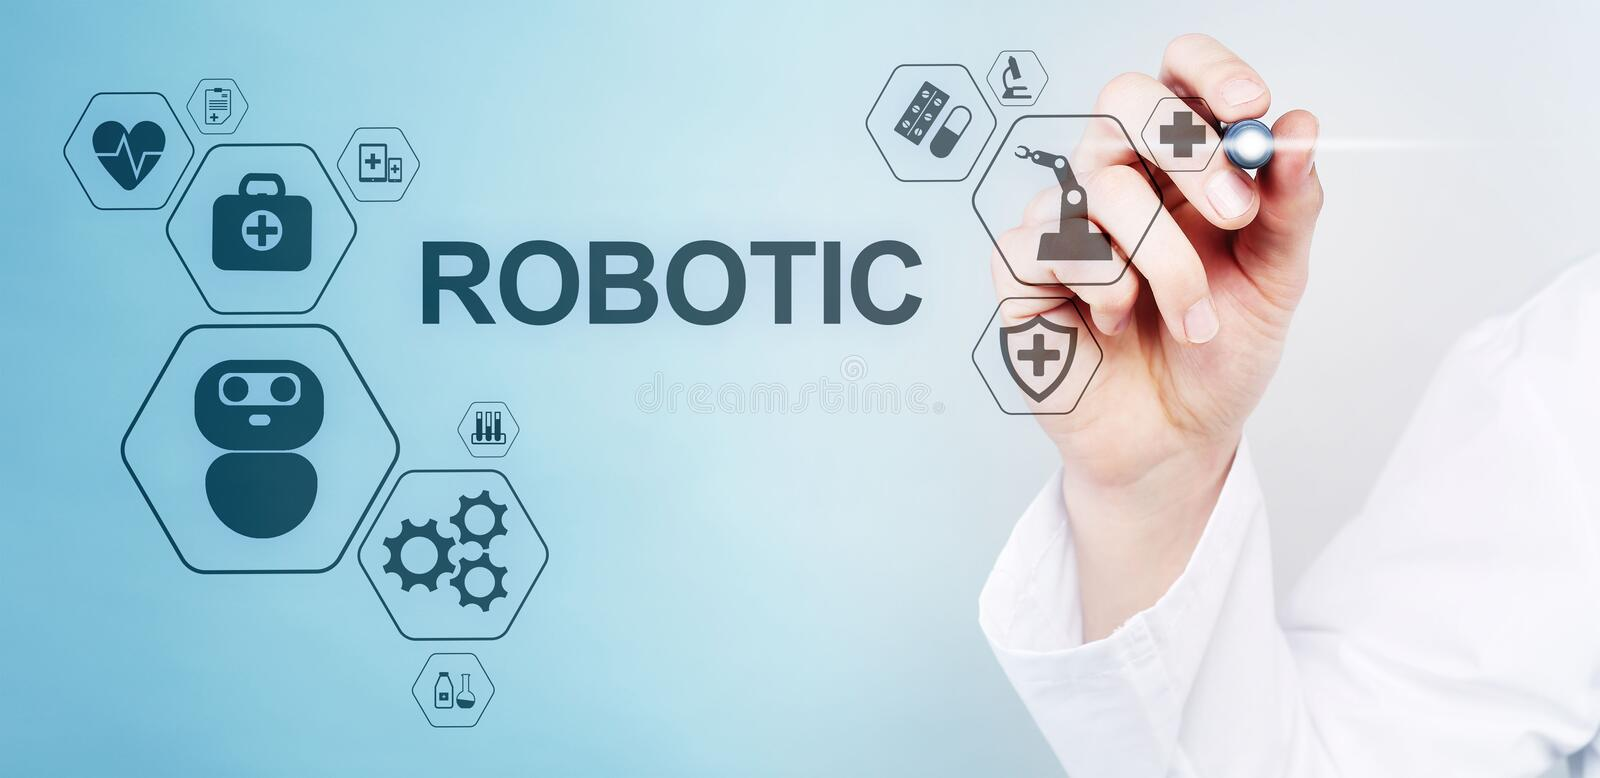 Medical robot rpa automation modern technology in medicine concept. Medical robot rpa automation modern technology in medicine concept royalty free stock photos